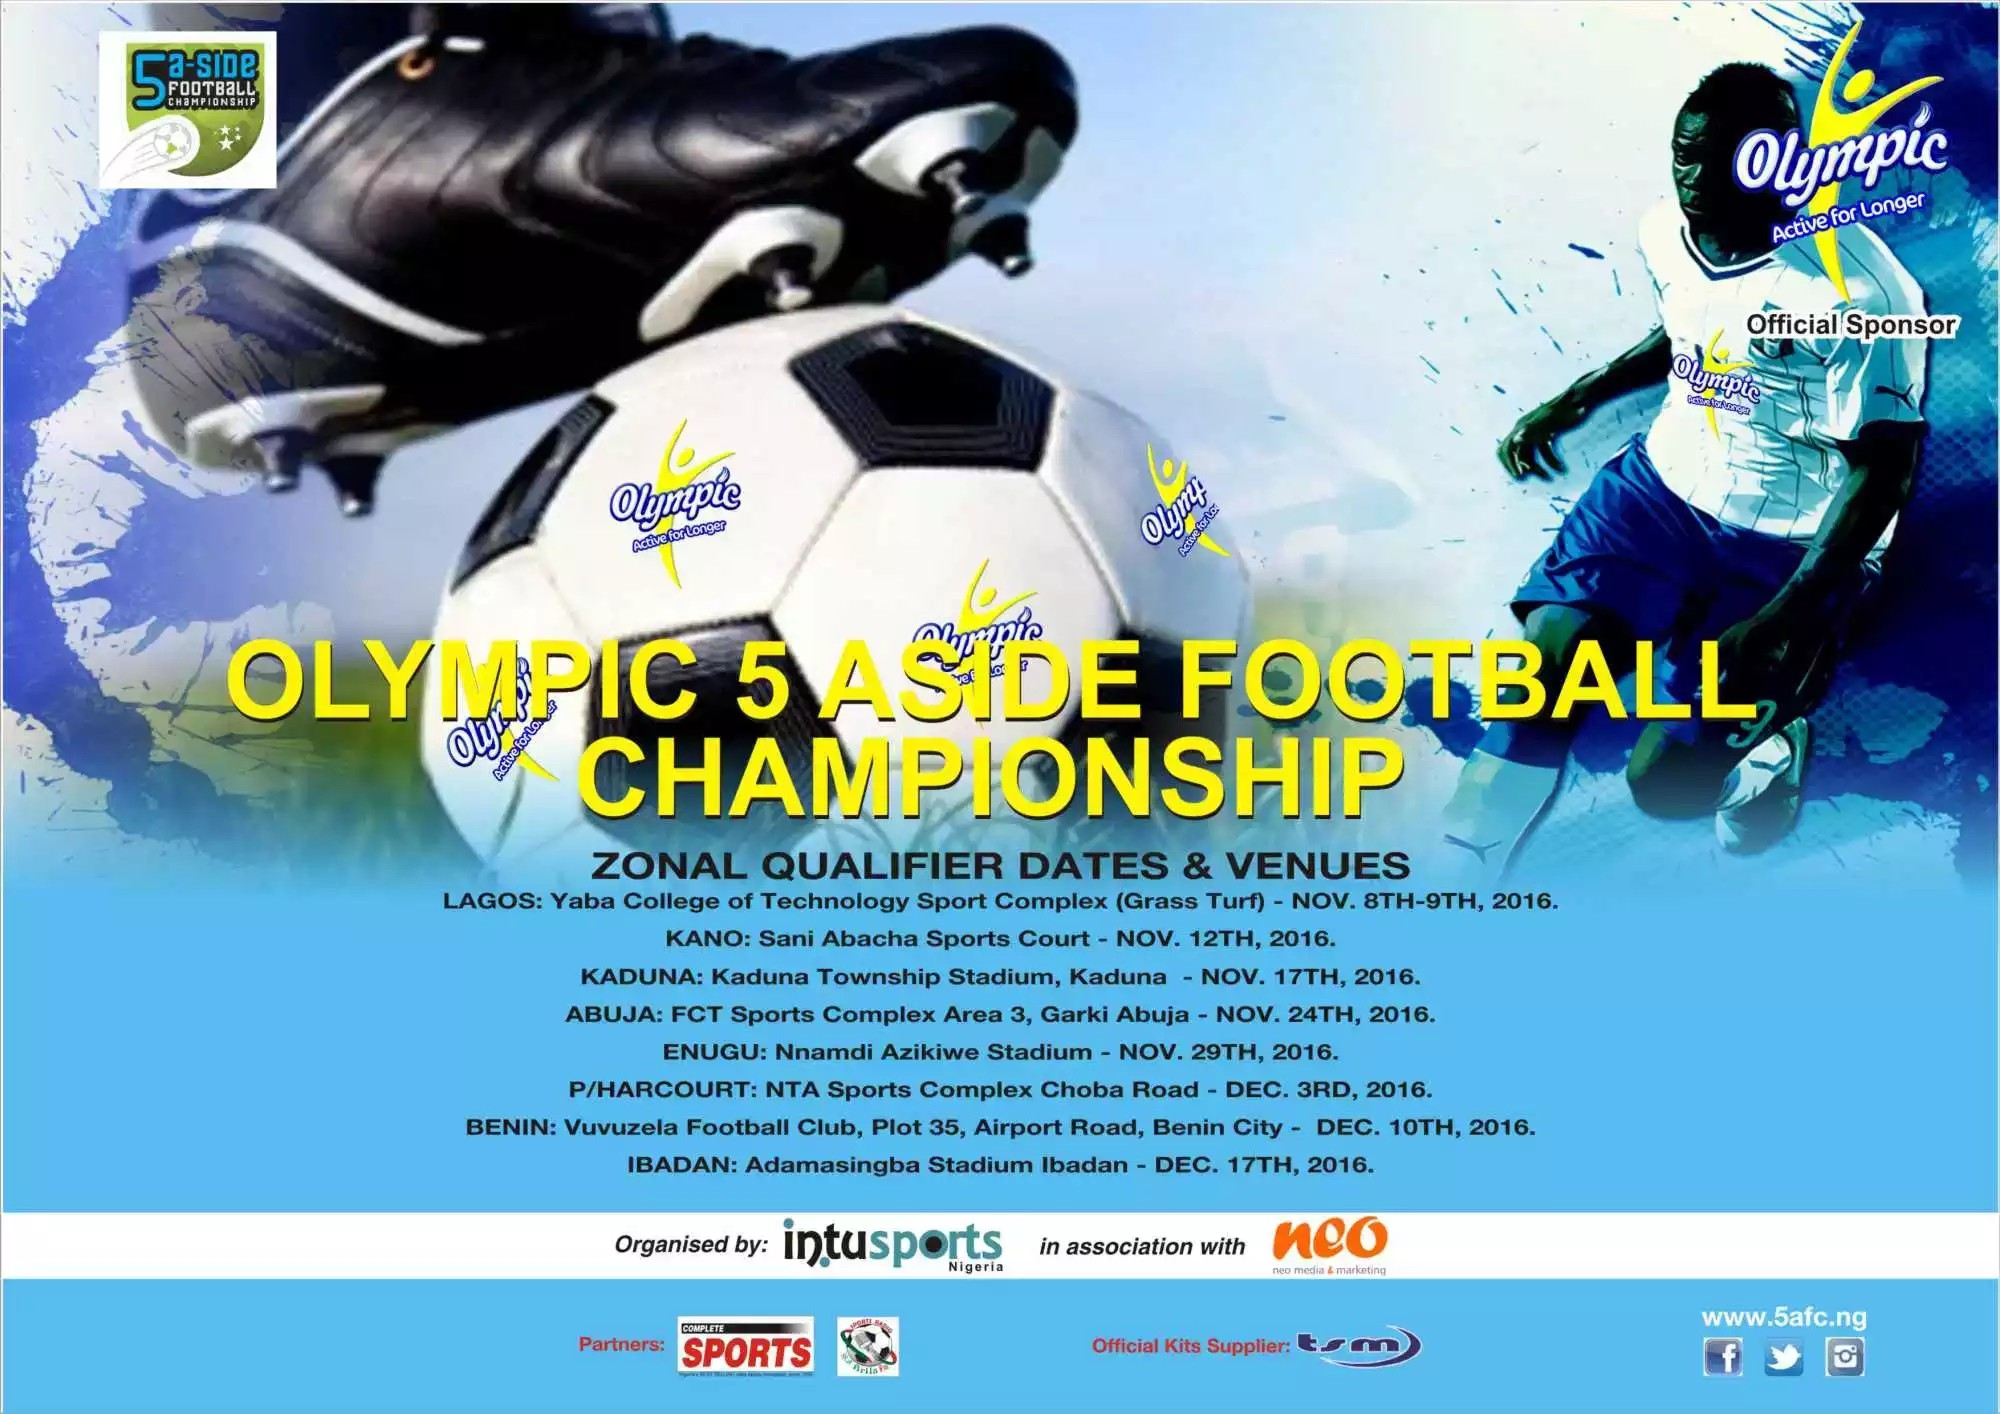 Olympic 5-A-Side